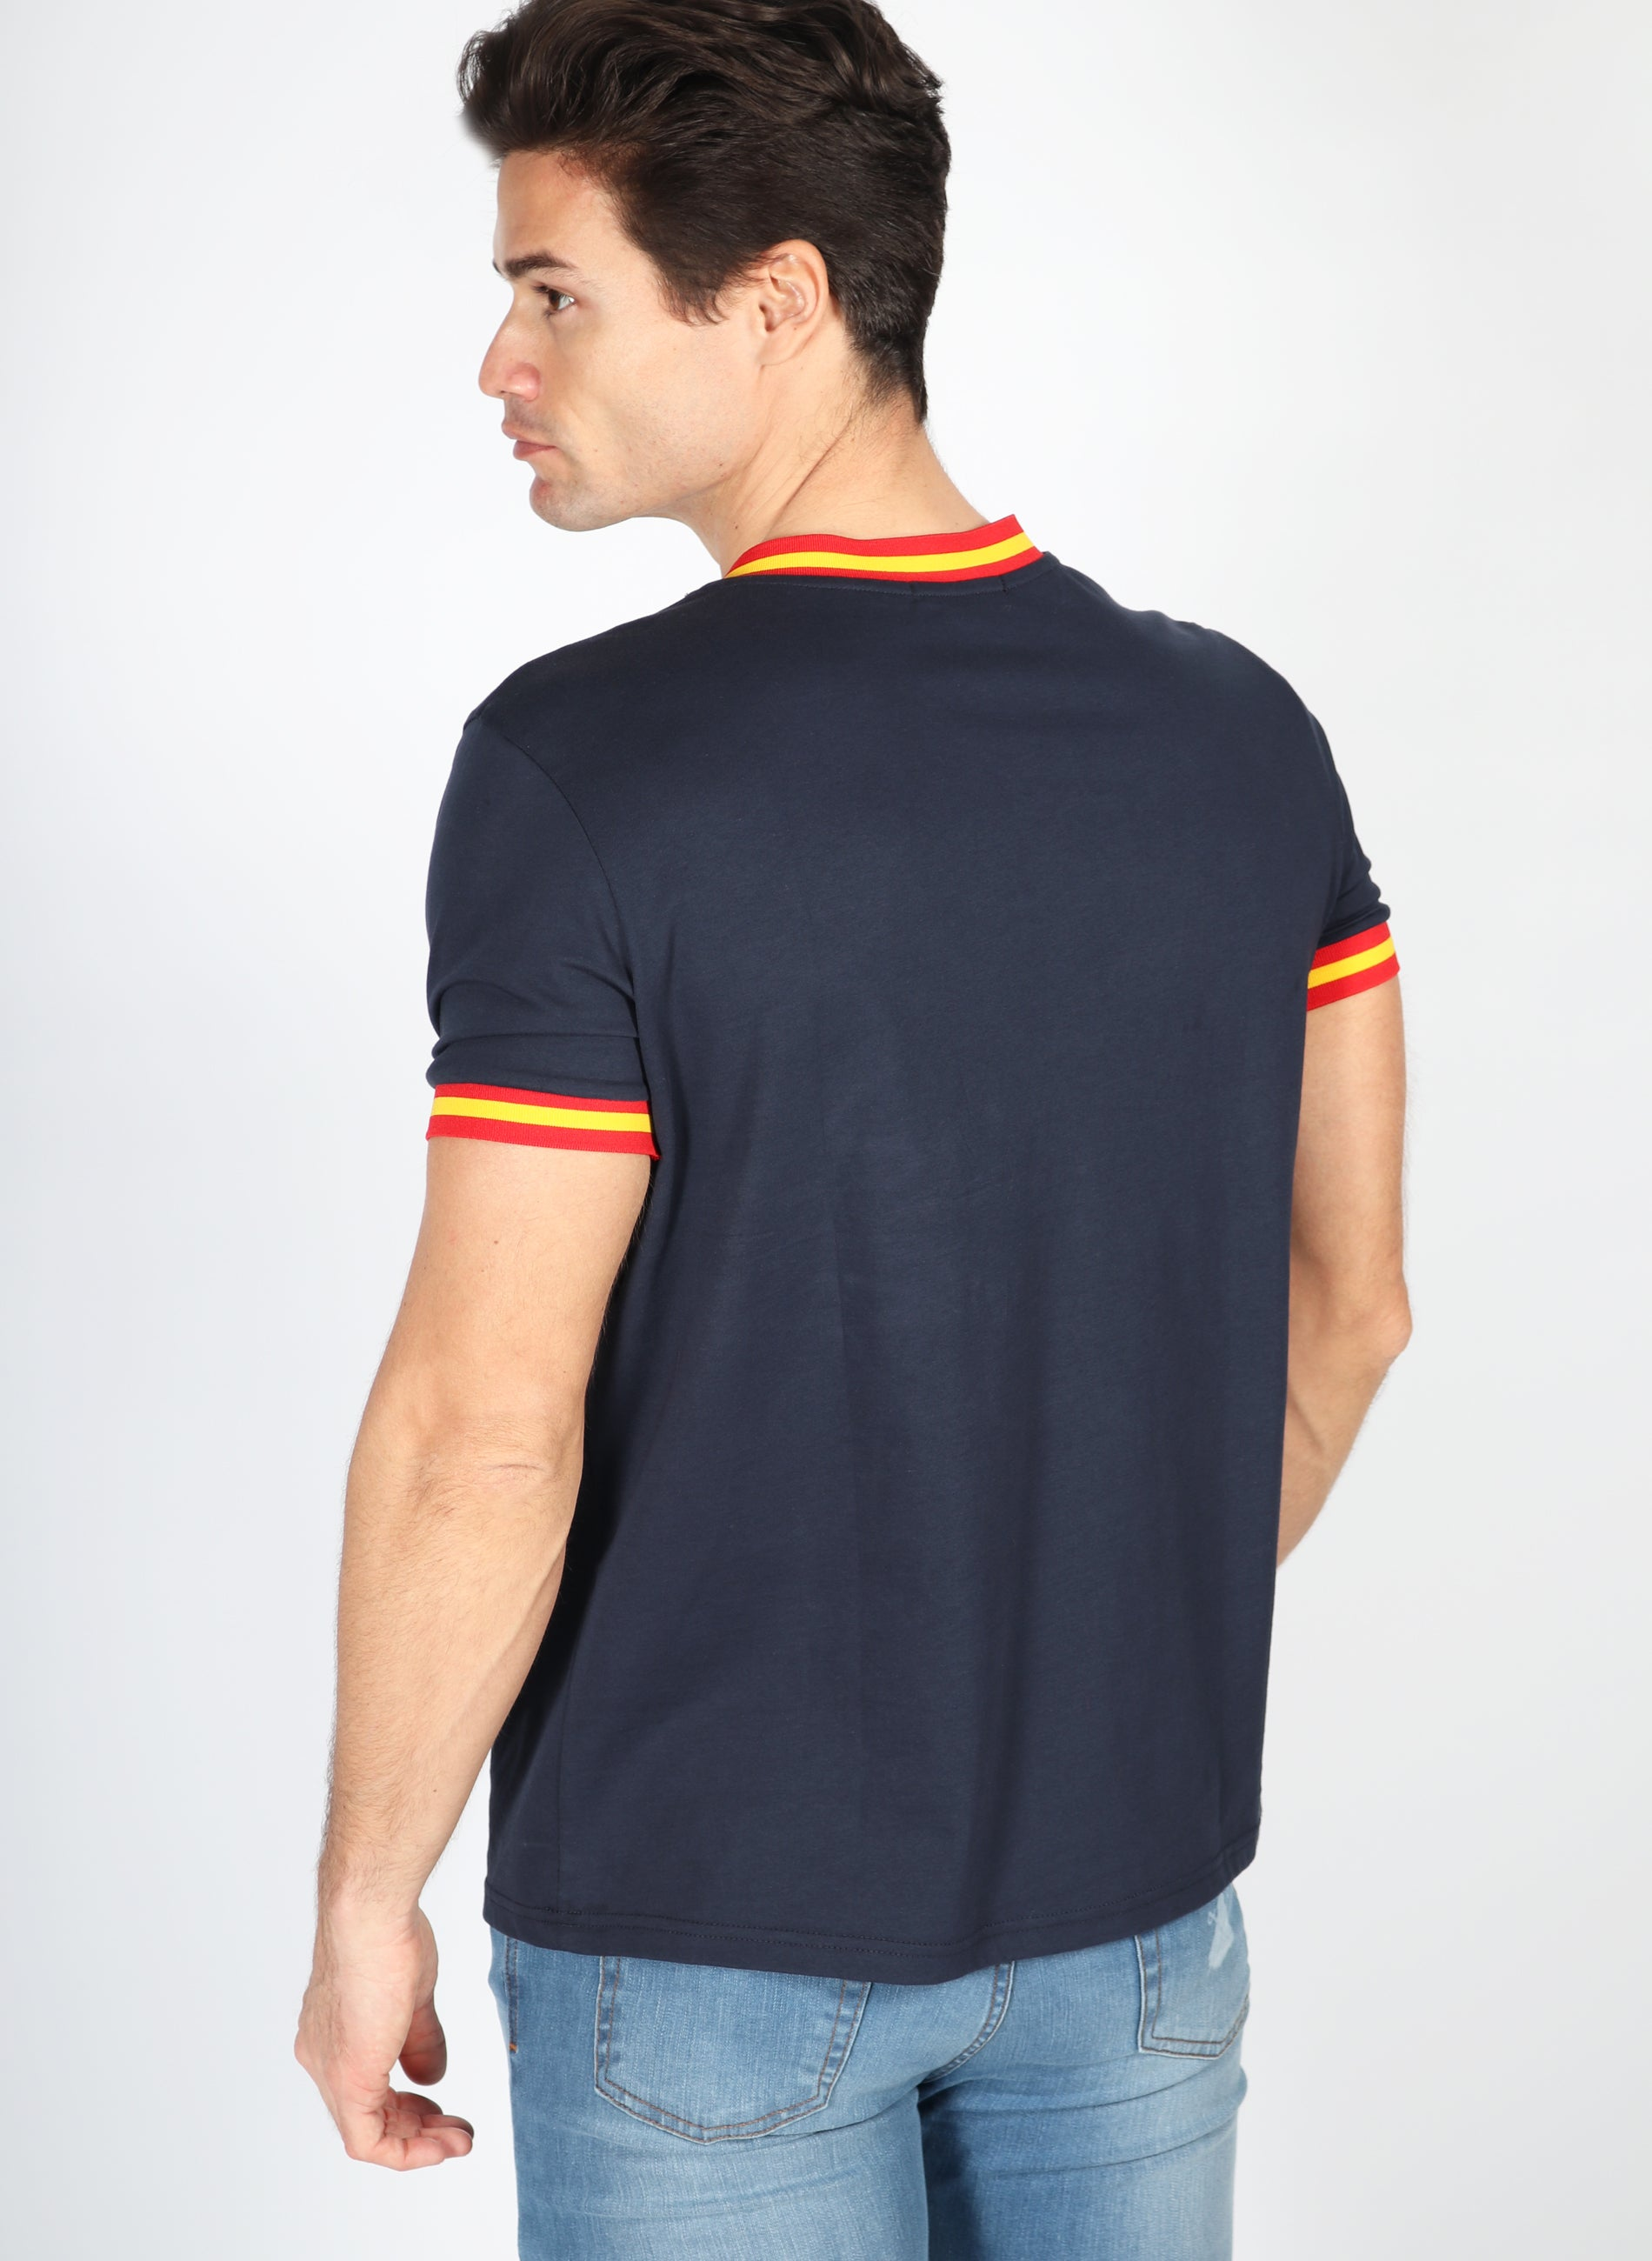 T-Shirt Navy Blue Ribbon Spanien Mann